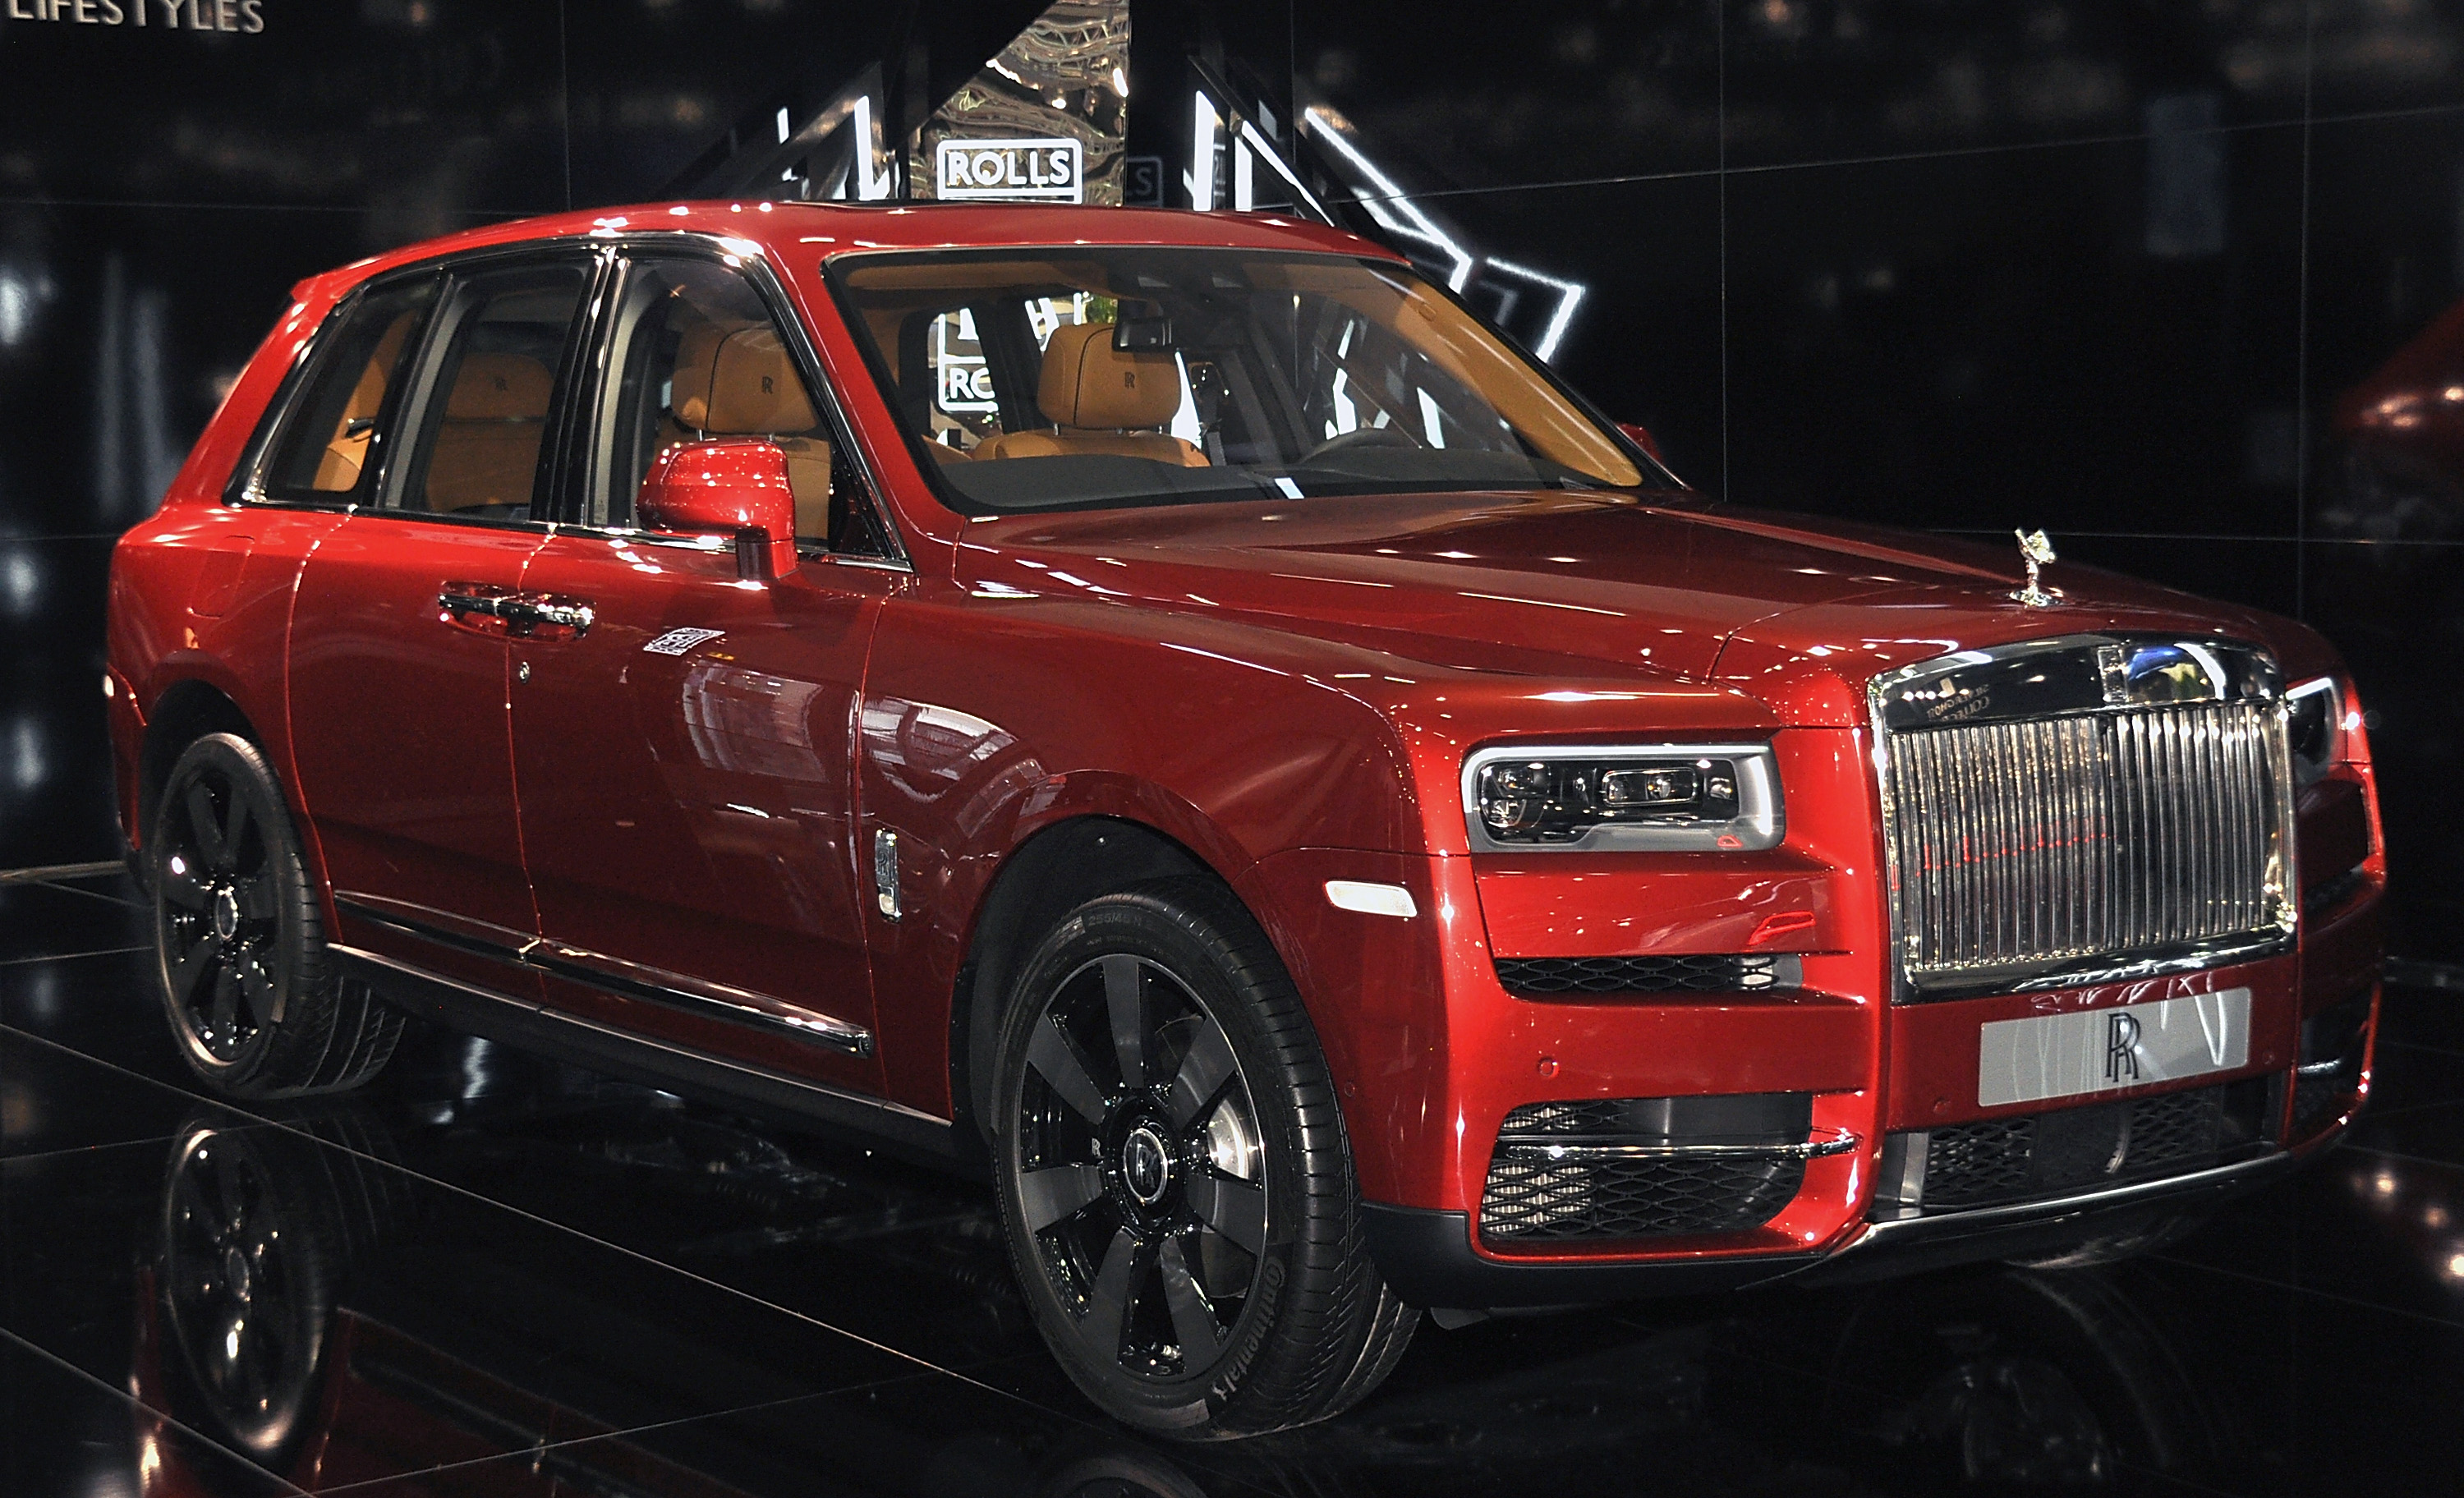 Rolls Royce Had A Record Year Powered By Cullinan Suv Sales